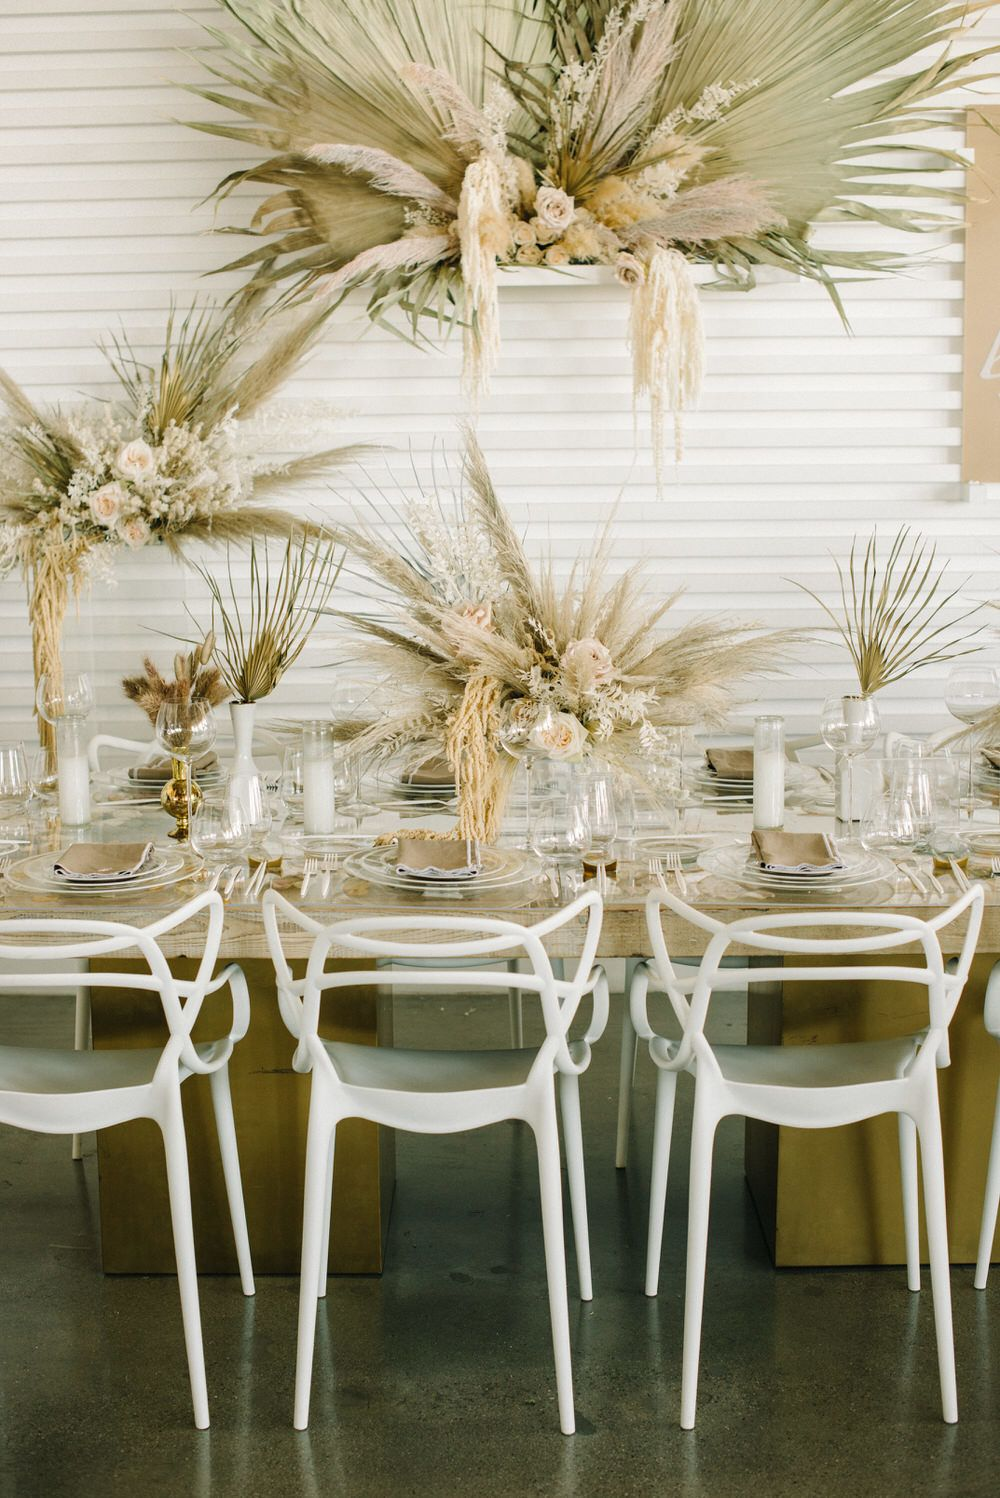 white chairs and pampas grass wedding reception decor